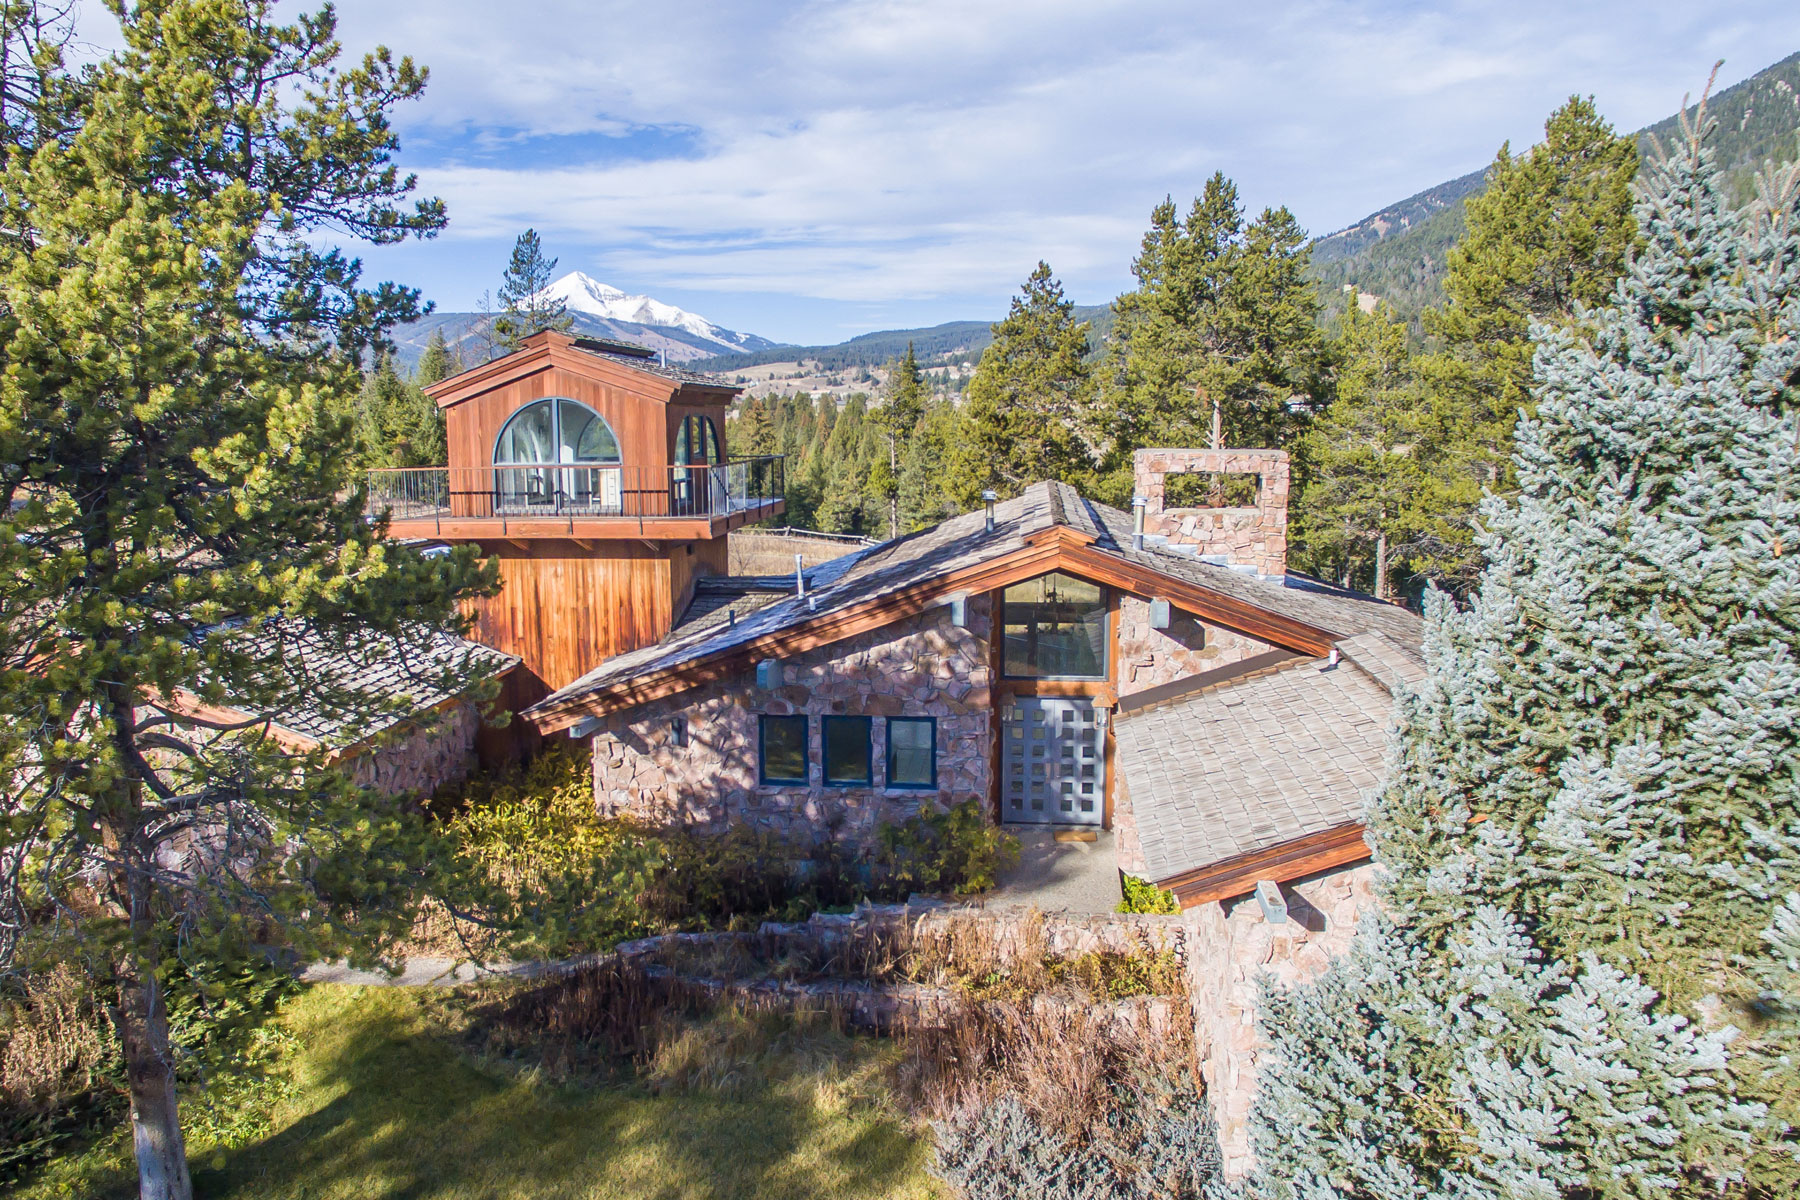 Villa per Vendita alle ore 5-B Ranch 942 Lone Mountain Trail, Big Sky, Montana, 59716 Stati Uniti